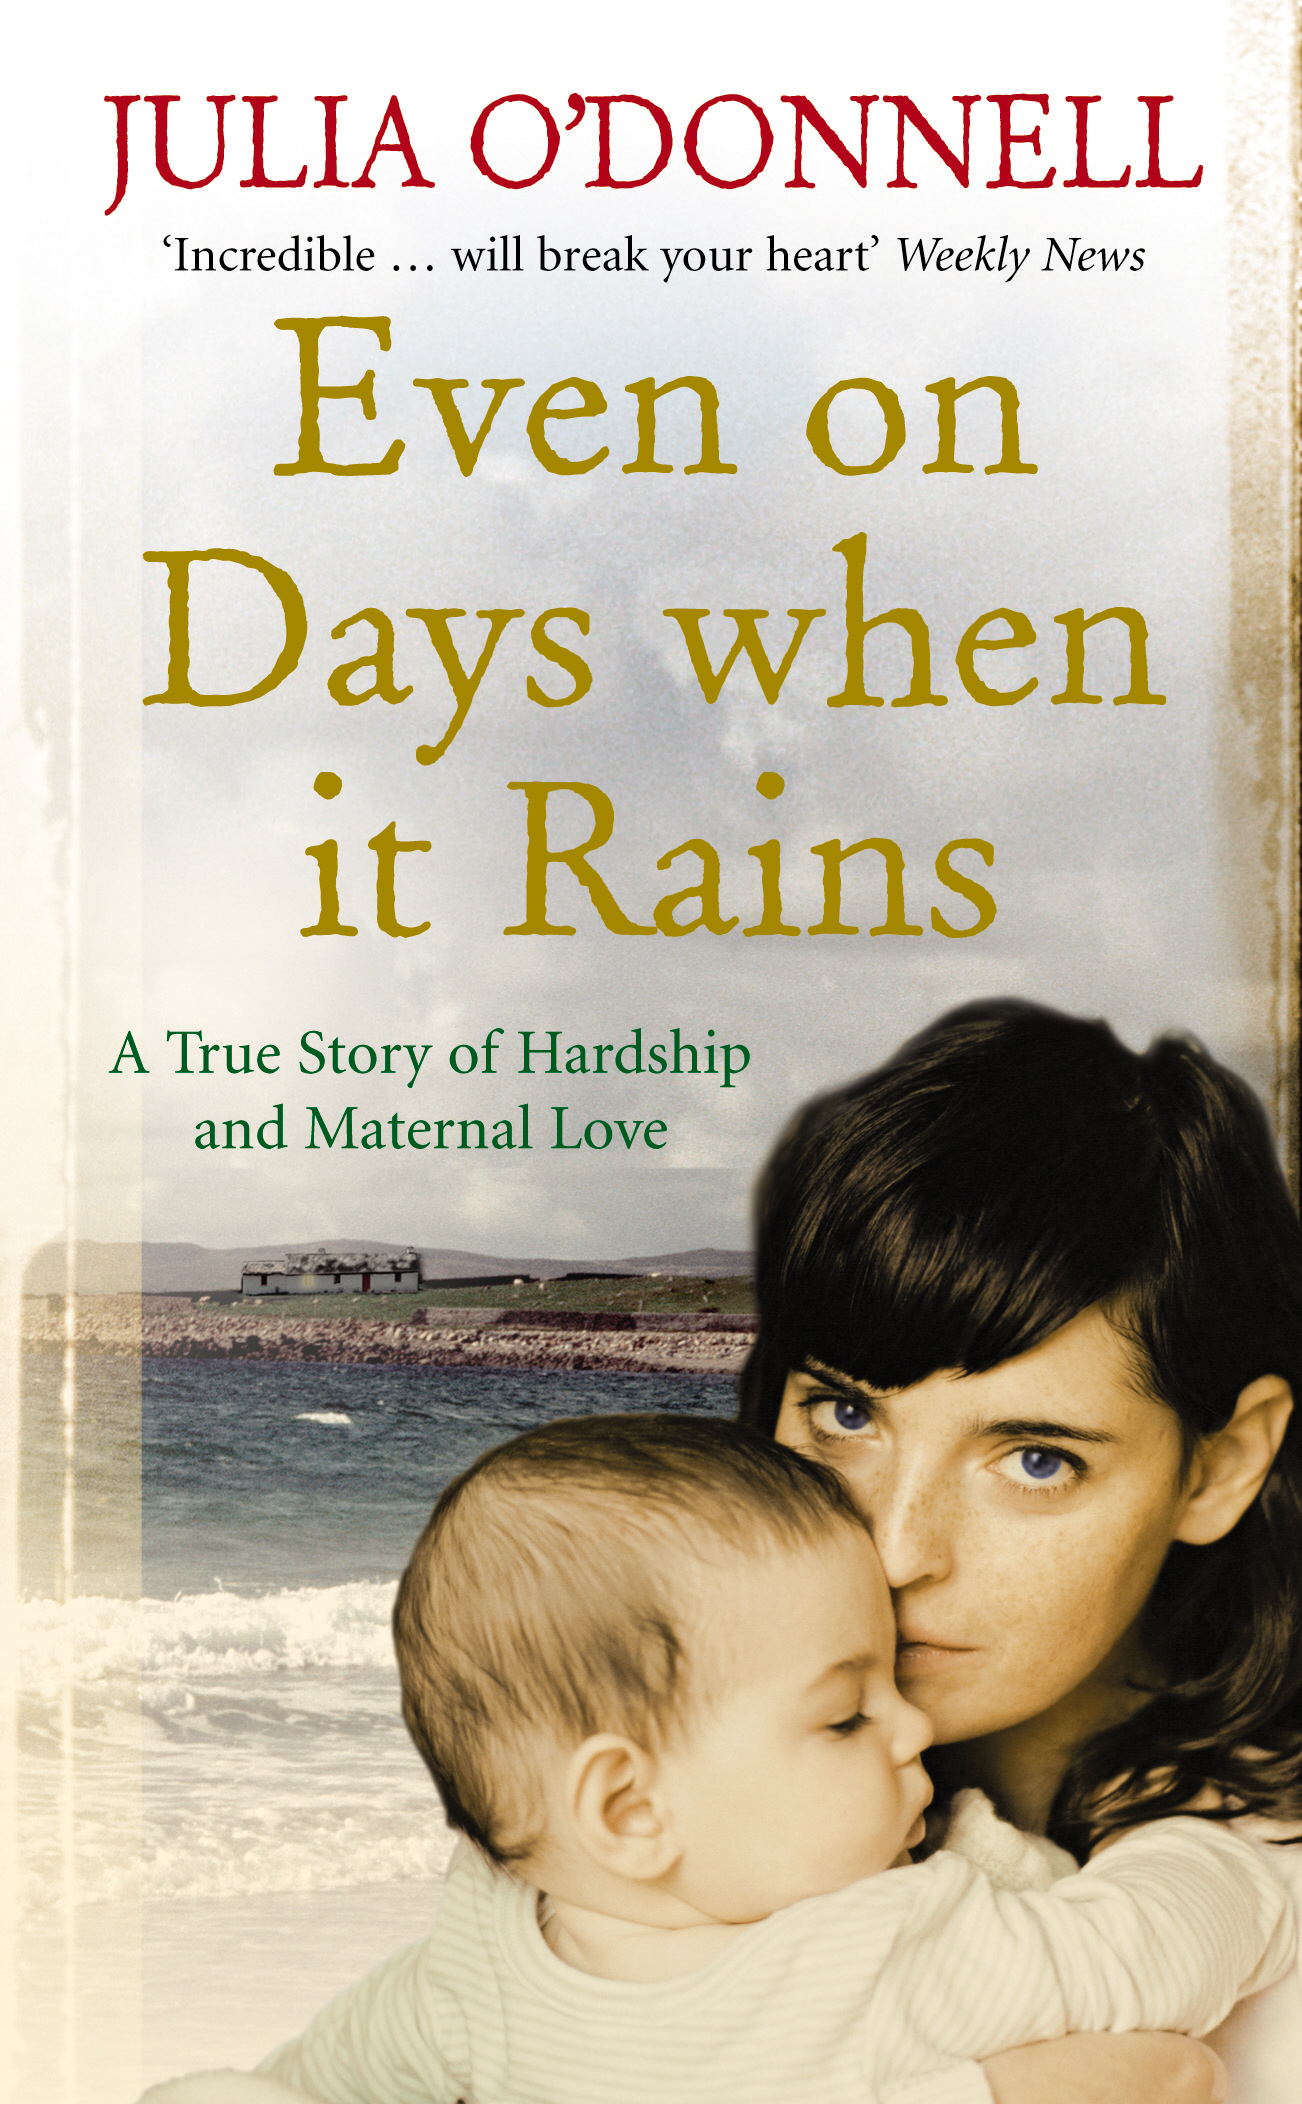 Even on Days when it Rains A True Story of Hardship and Maternal Love